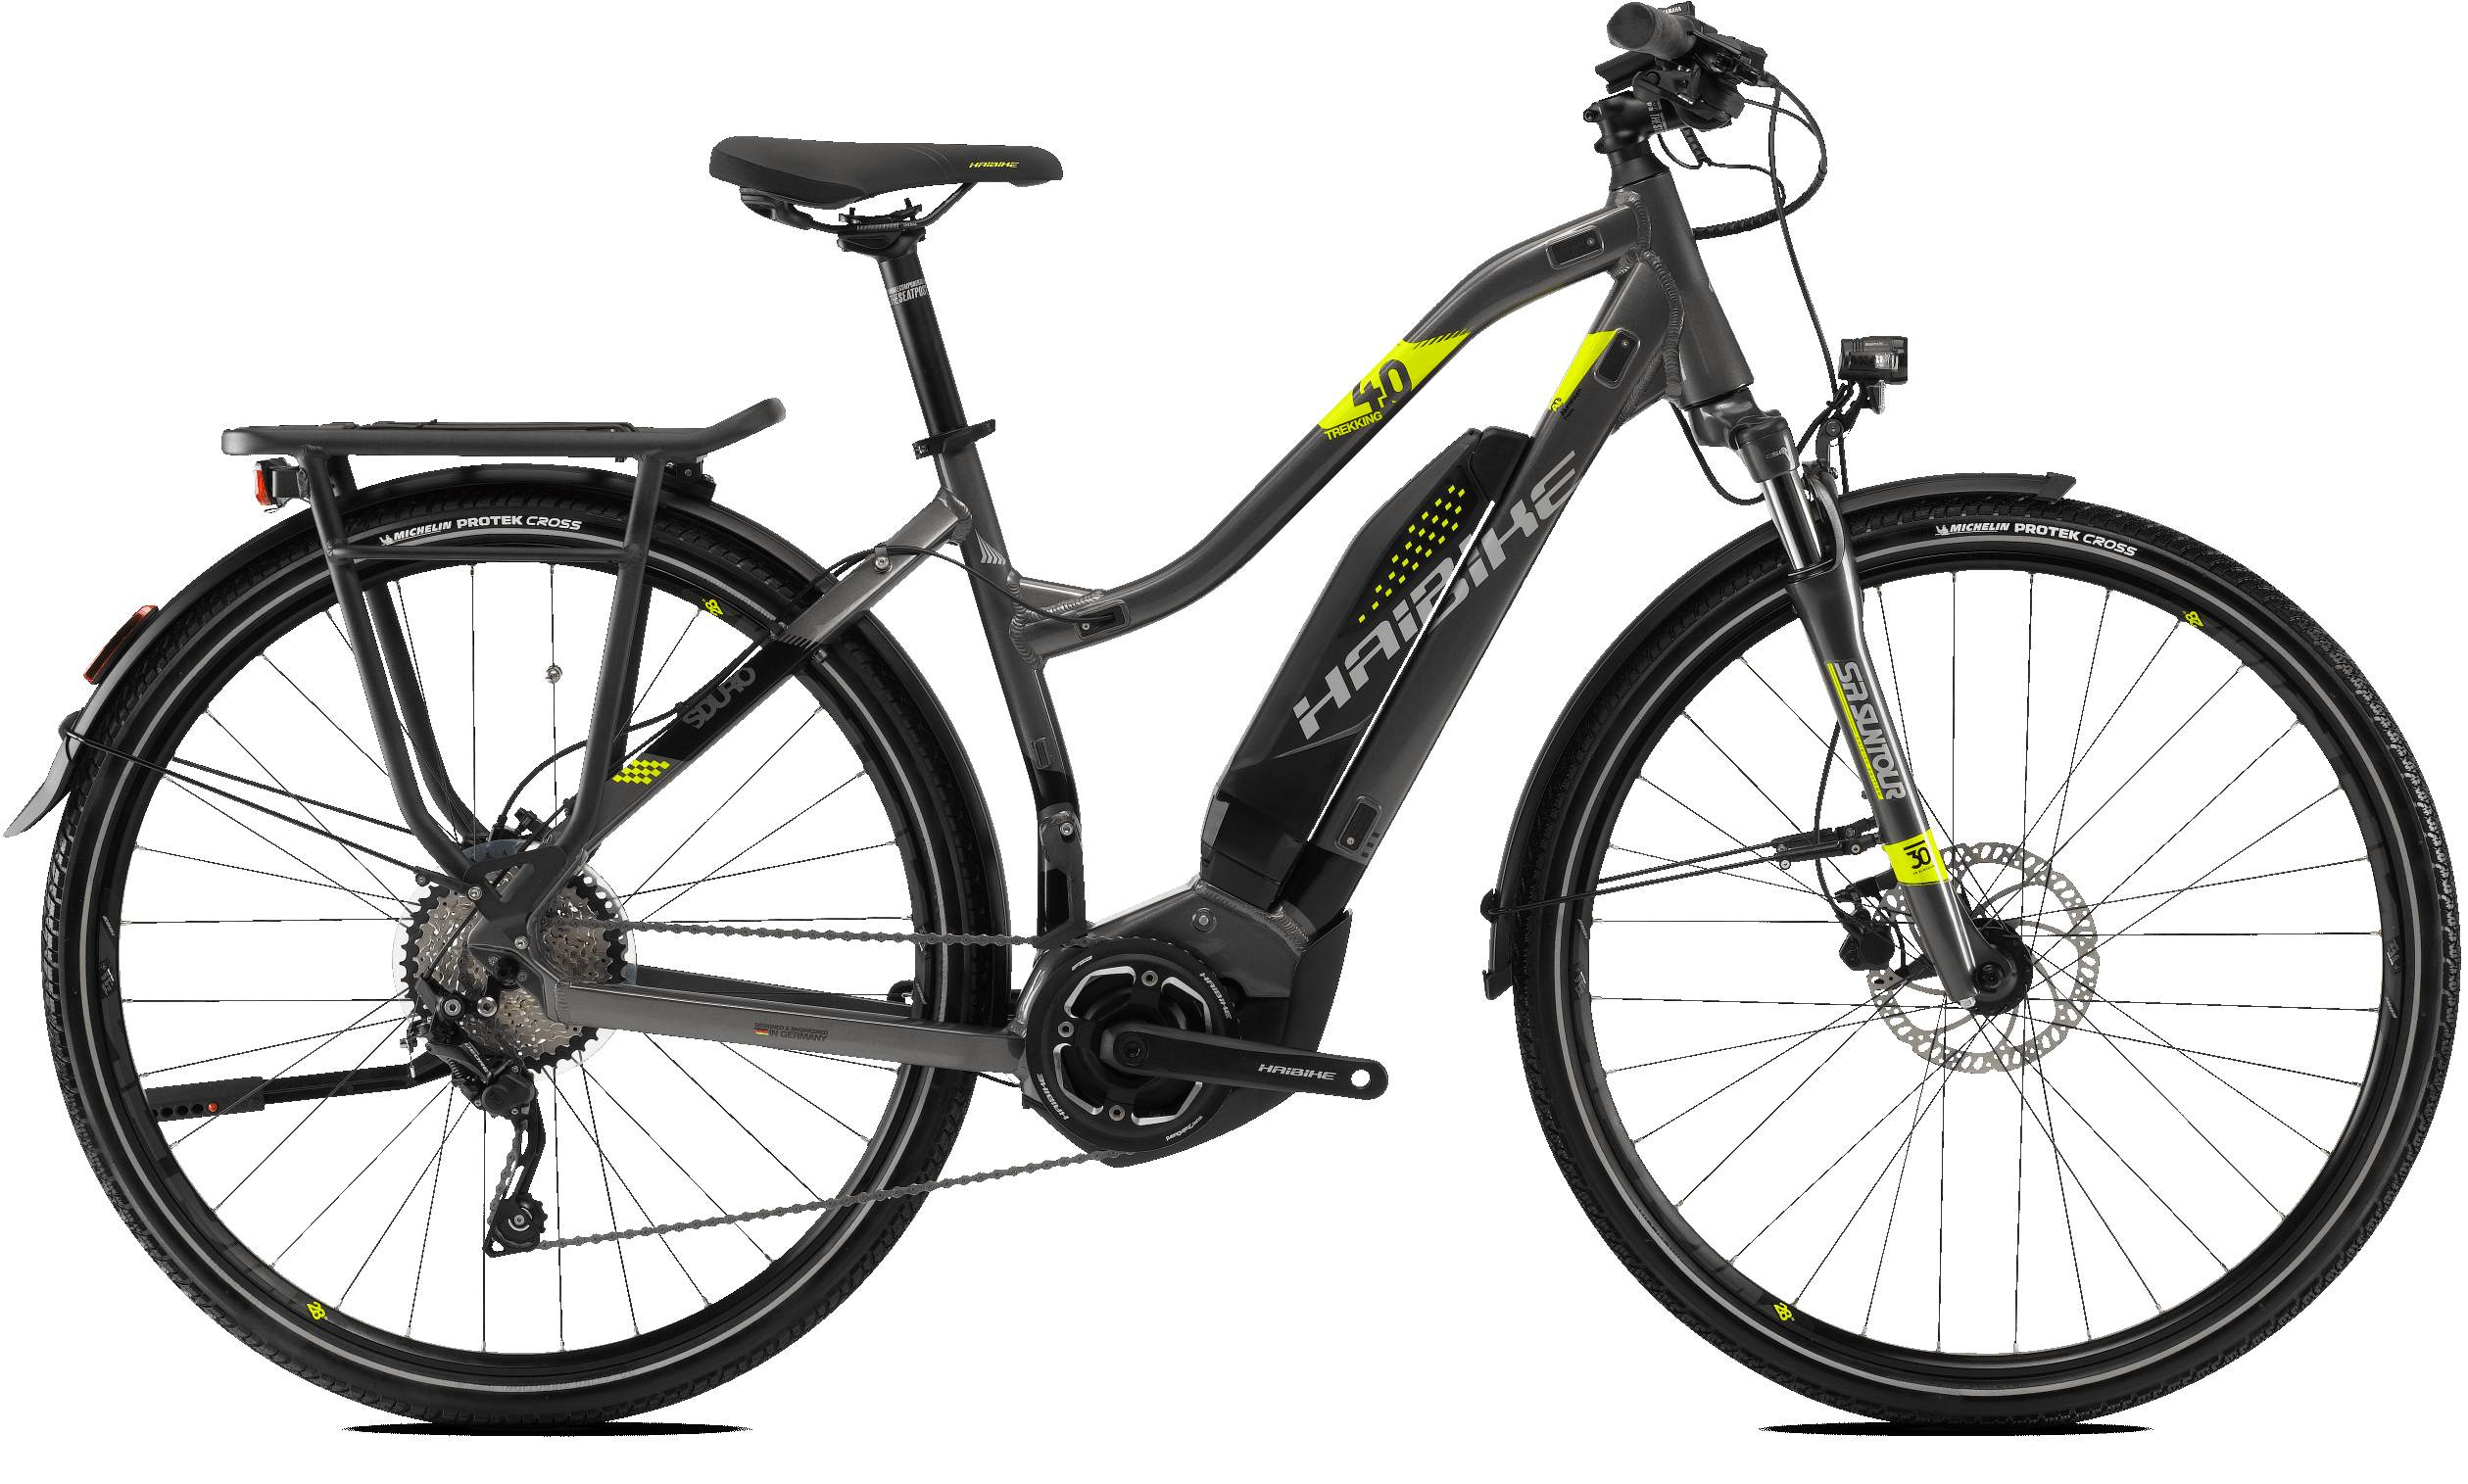 Haibike sDuro 4 Electric Bike